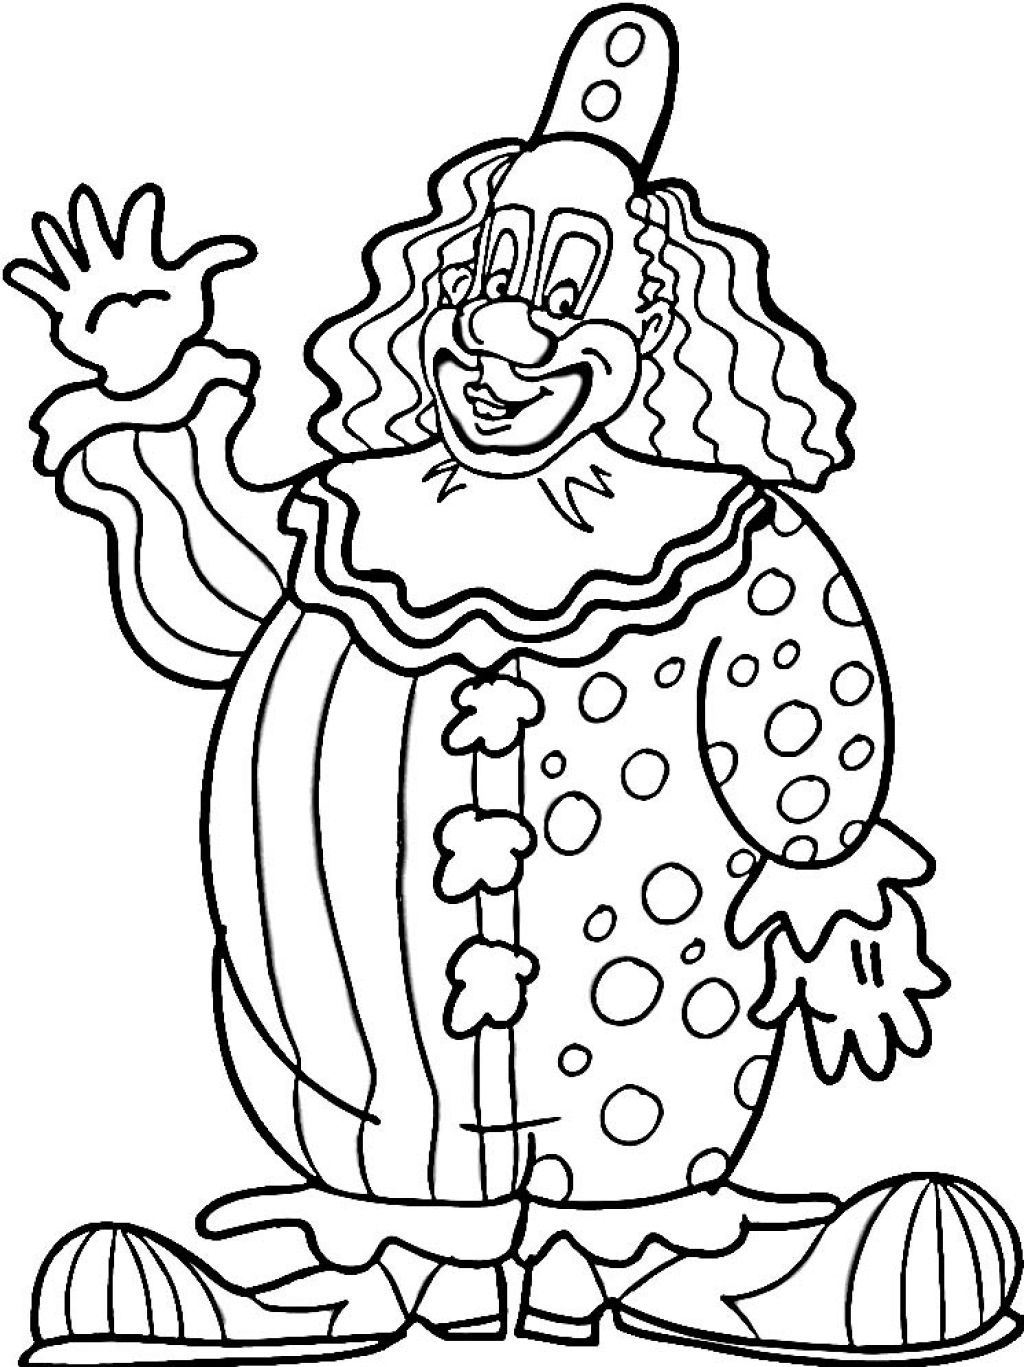 colwn coloring pages - photo#18